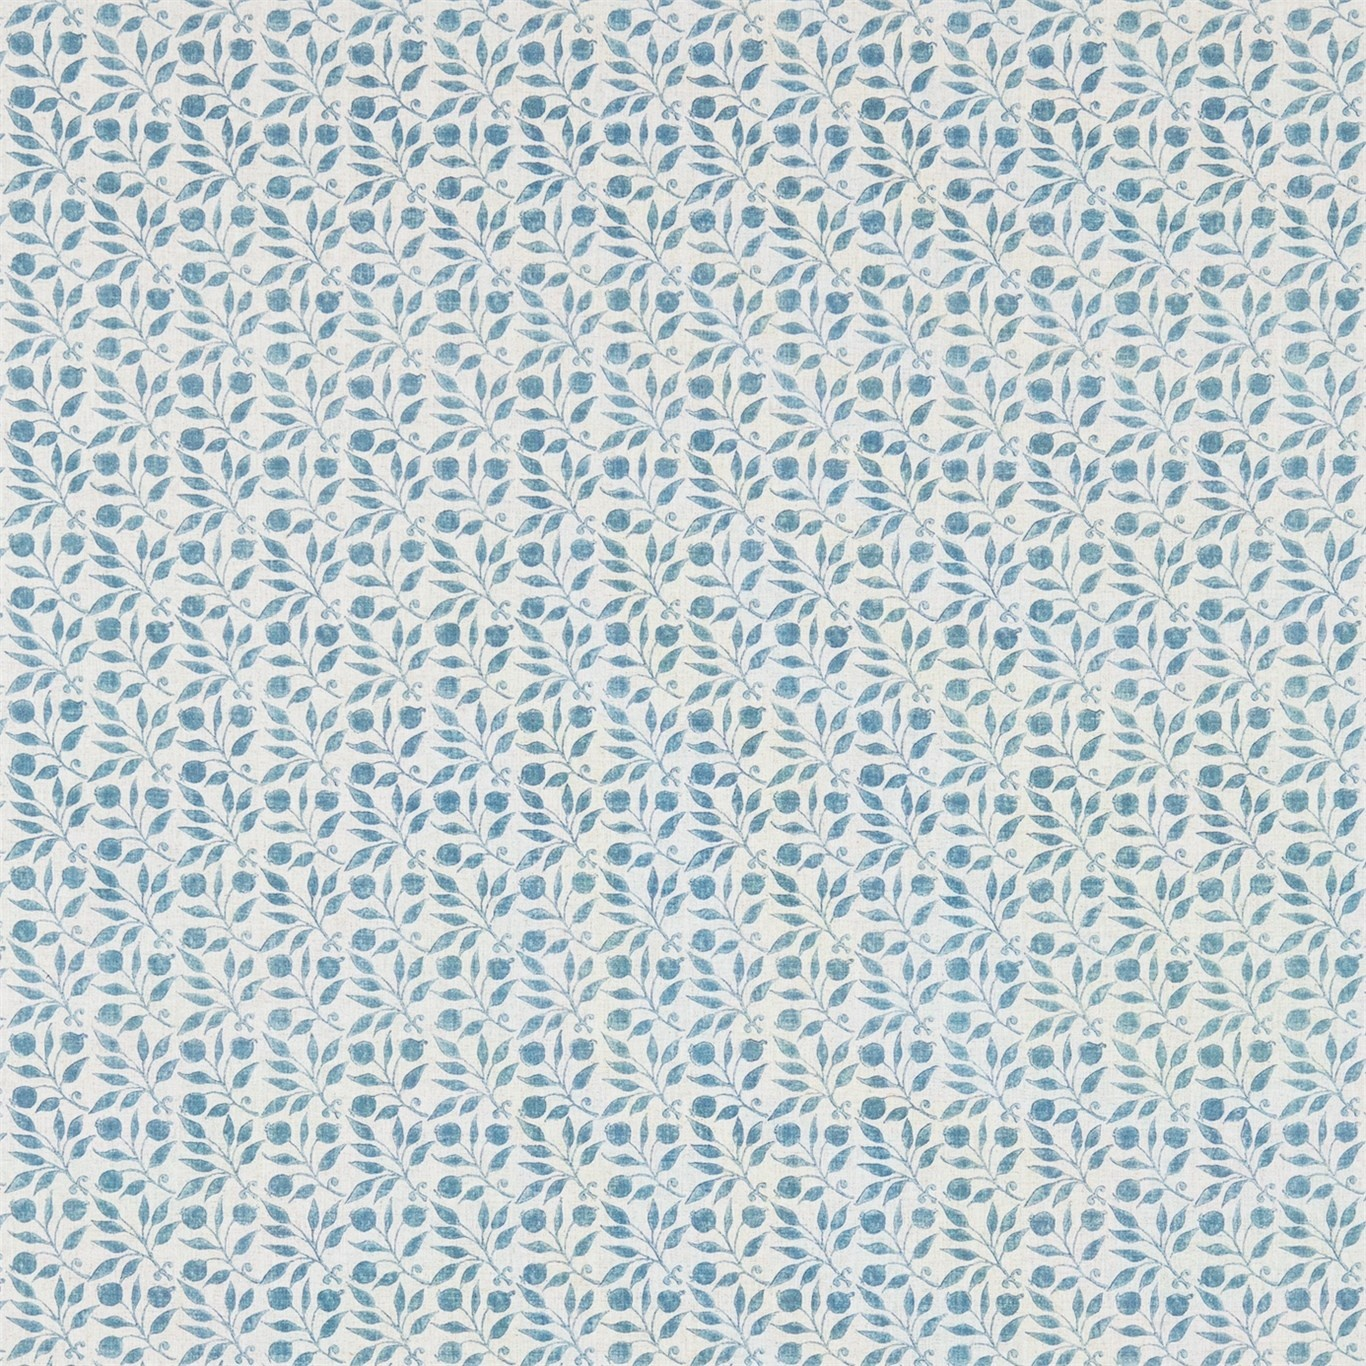 Image of Morris & Co Rosehip Mineral Blue Curtain Fabric 224490